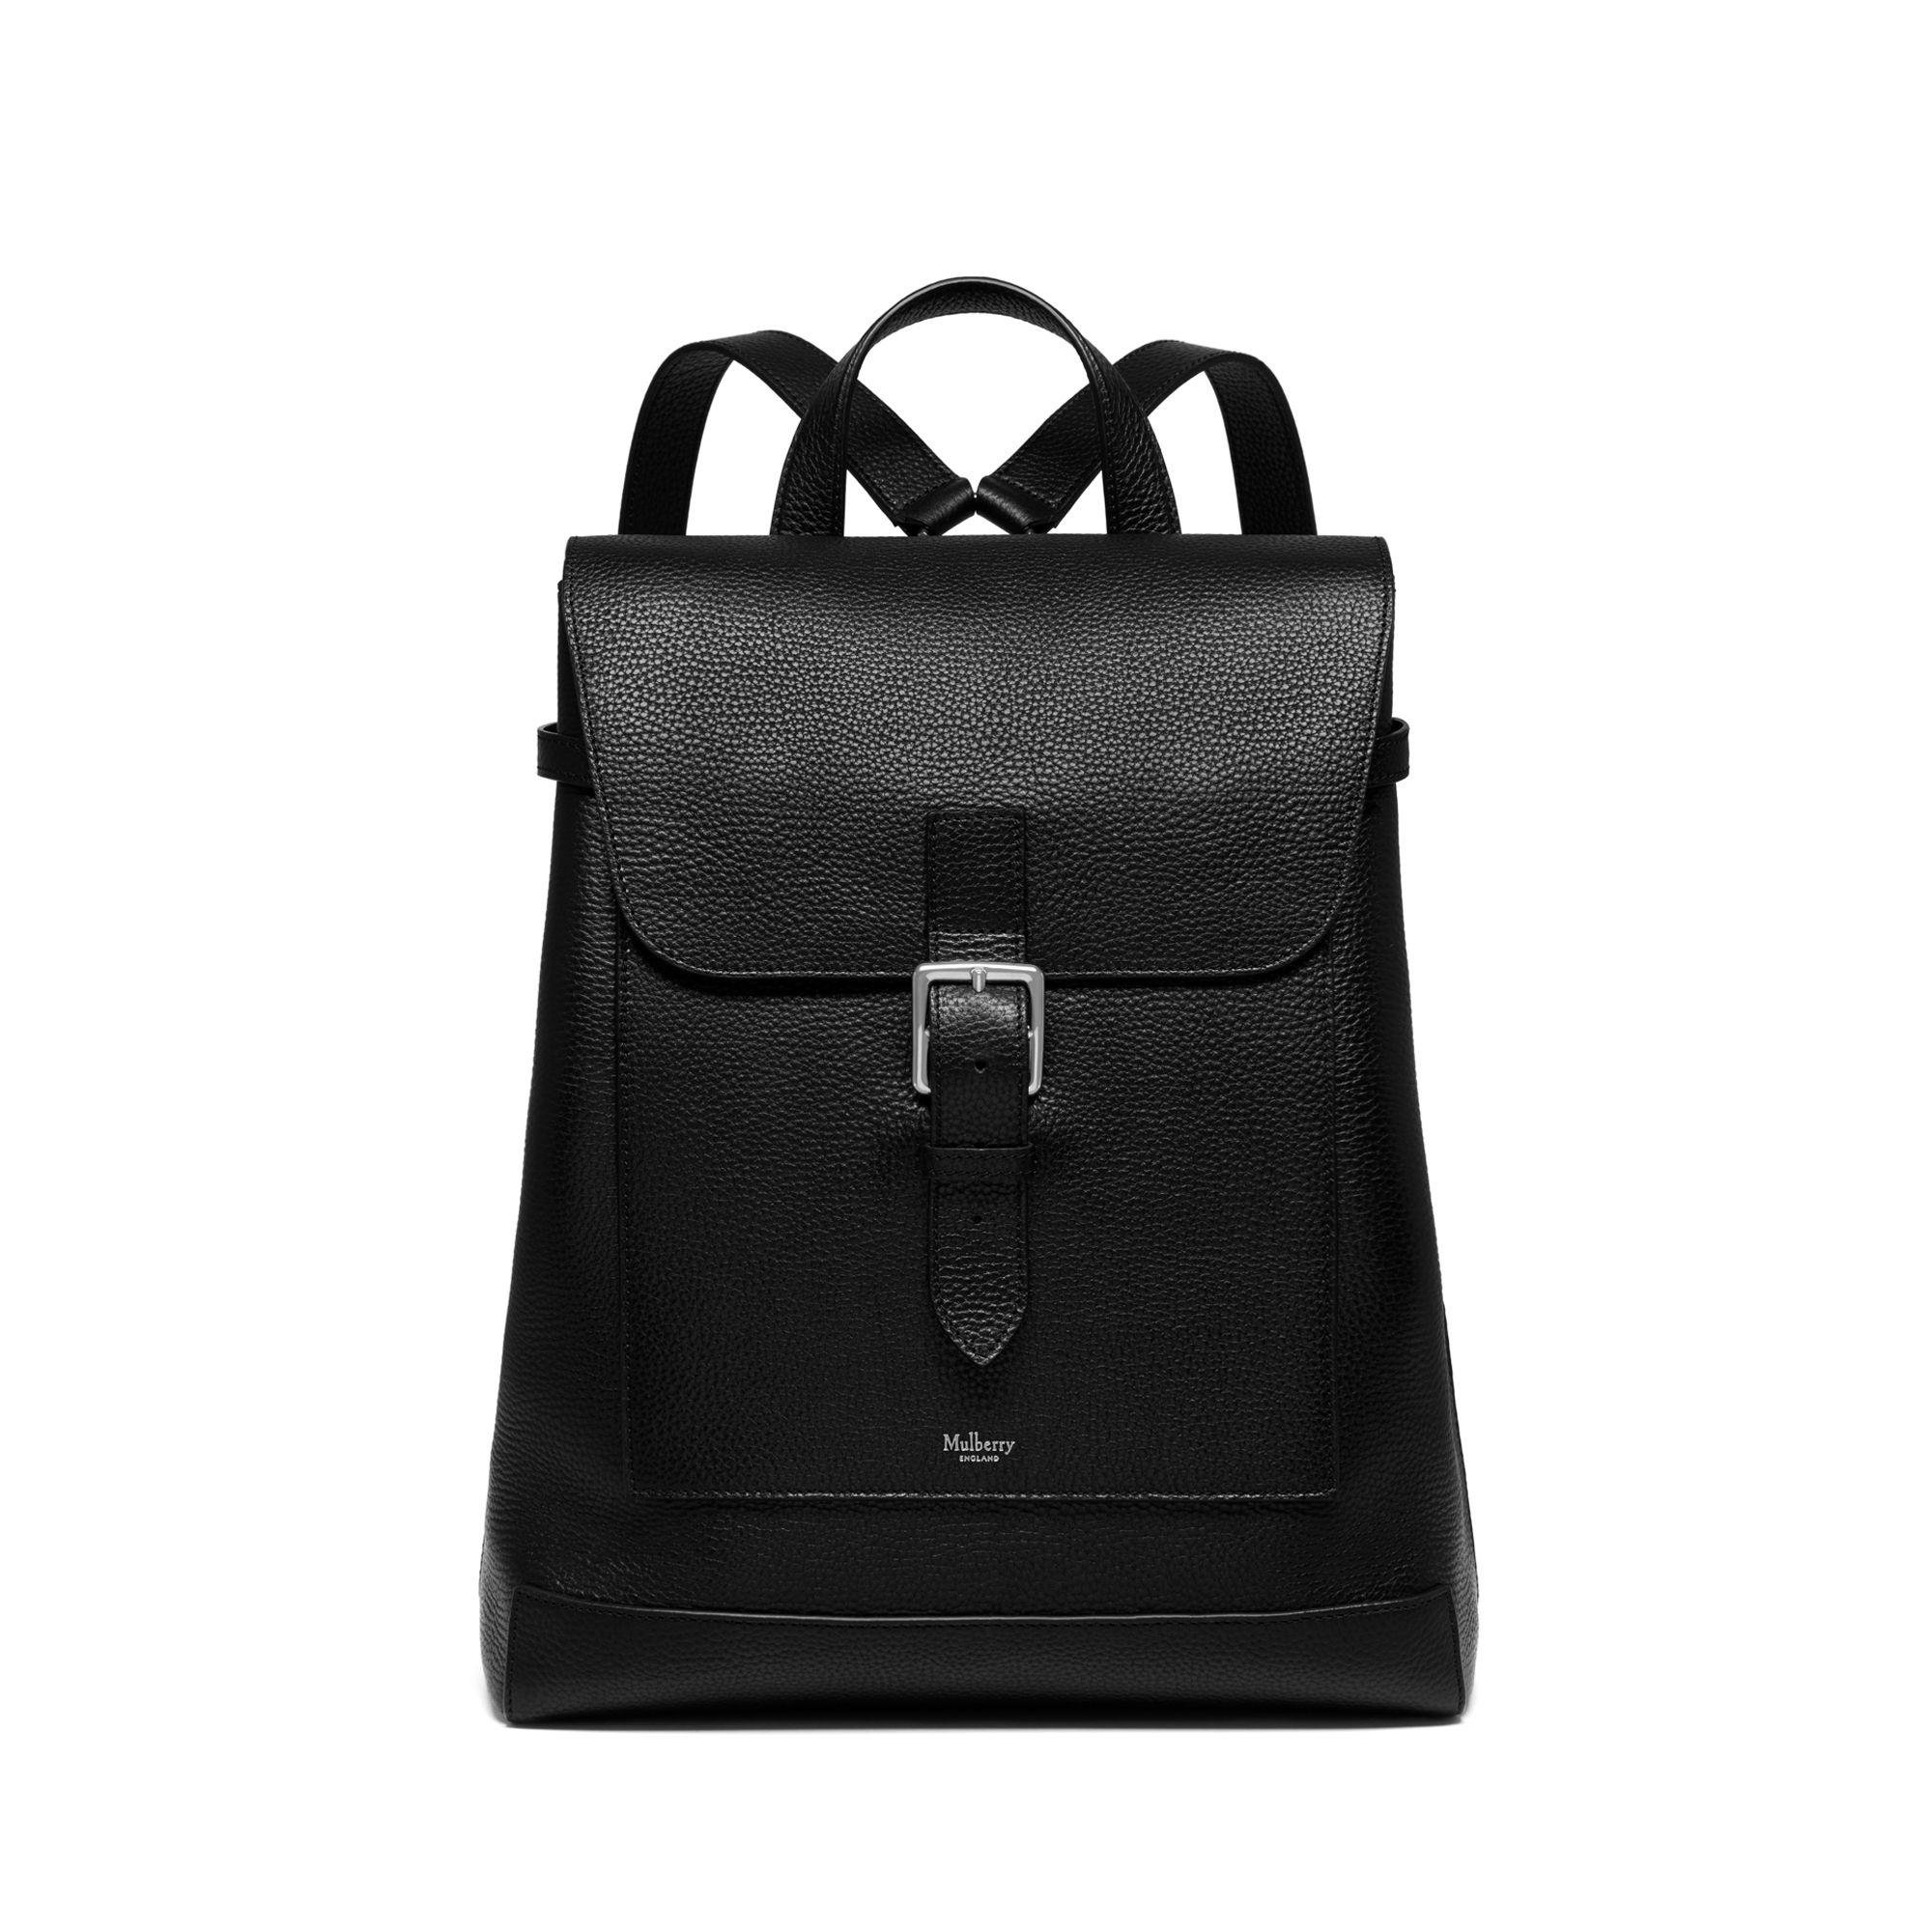 455227c3f1 Mulberry - Chiltern Backpack In Black Natural Grain Leather for Men - Lyst.  View fullscreen